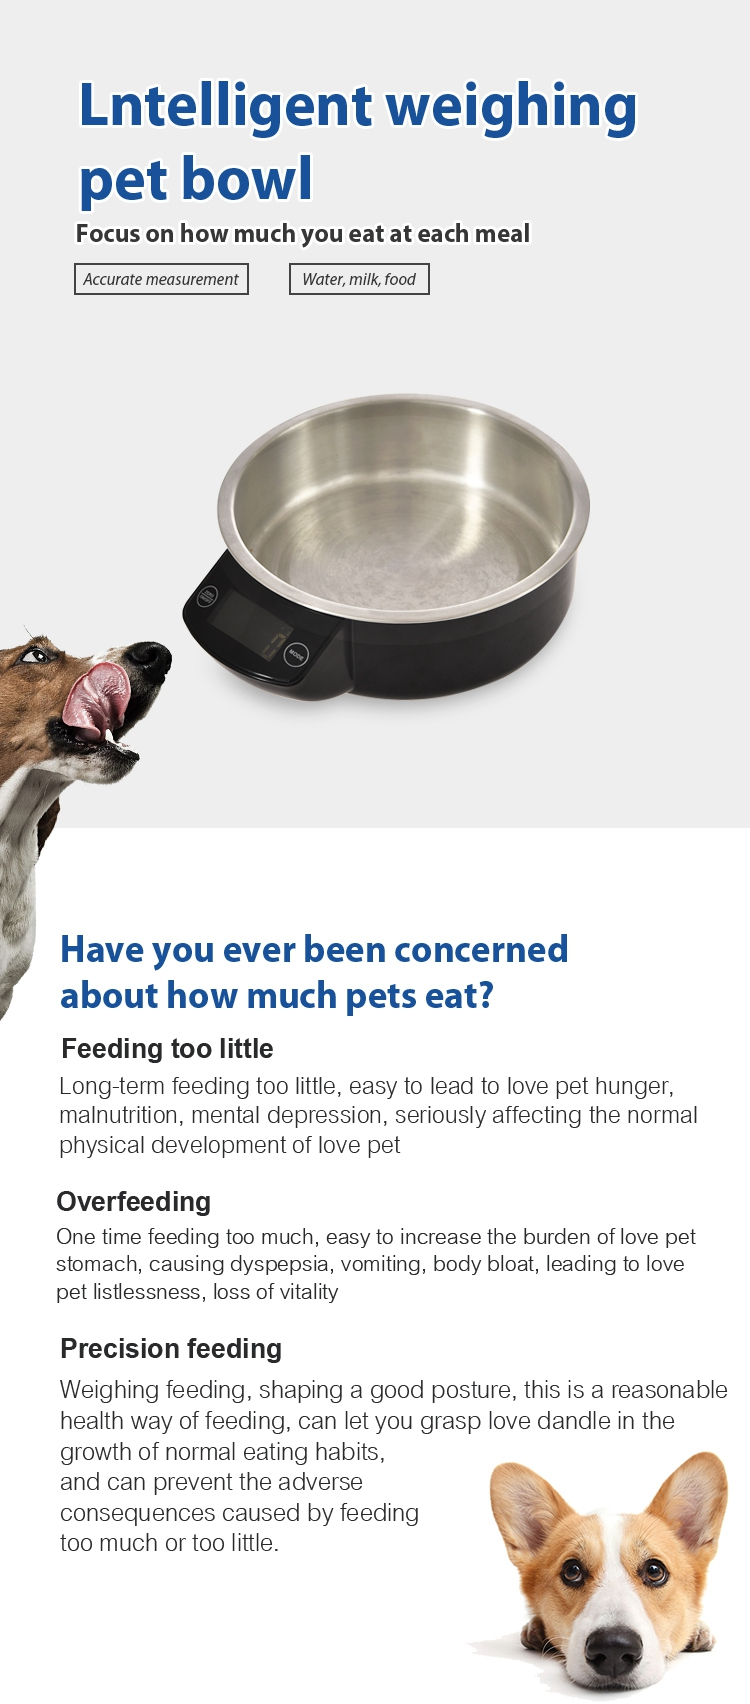 Tianyuan pet stainless steel sensor pet feeder dog and cat bowl,smart digital weighing bowl